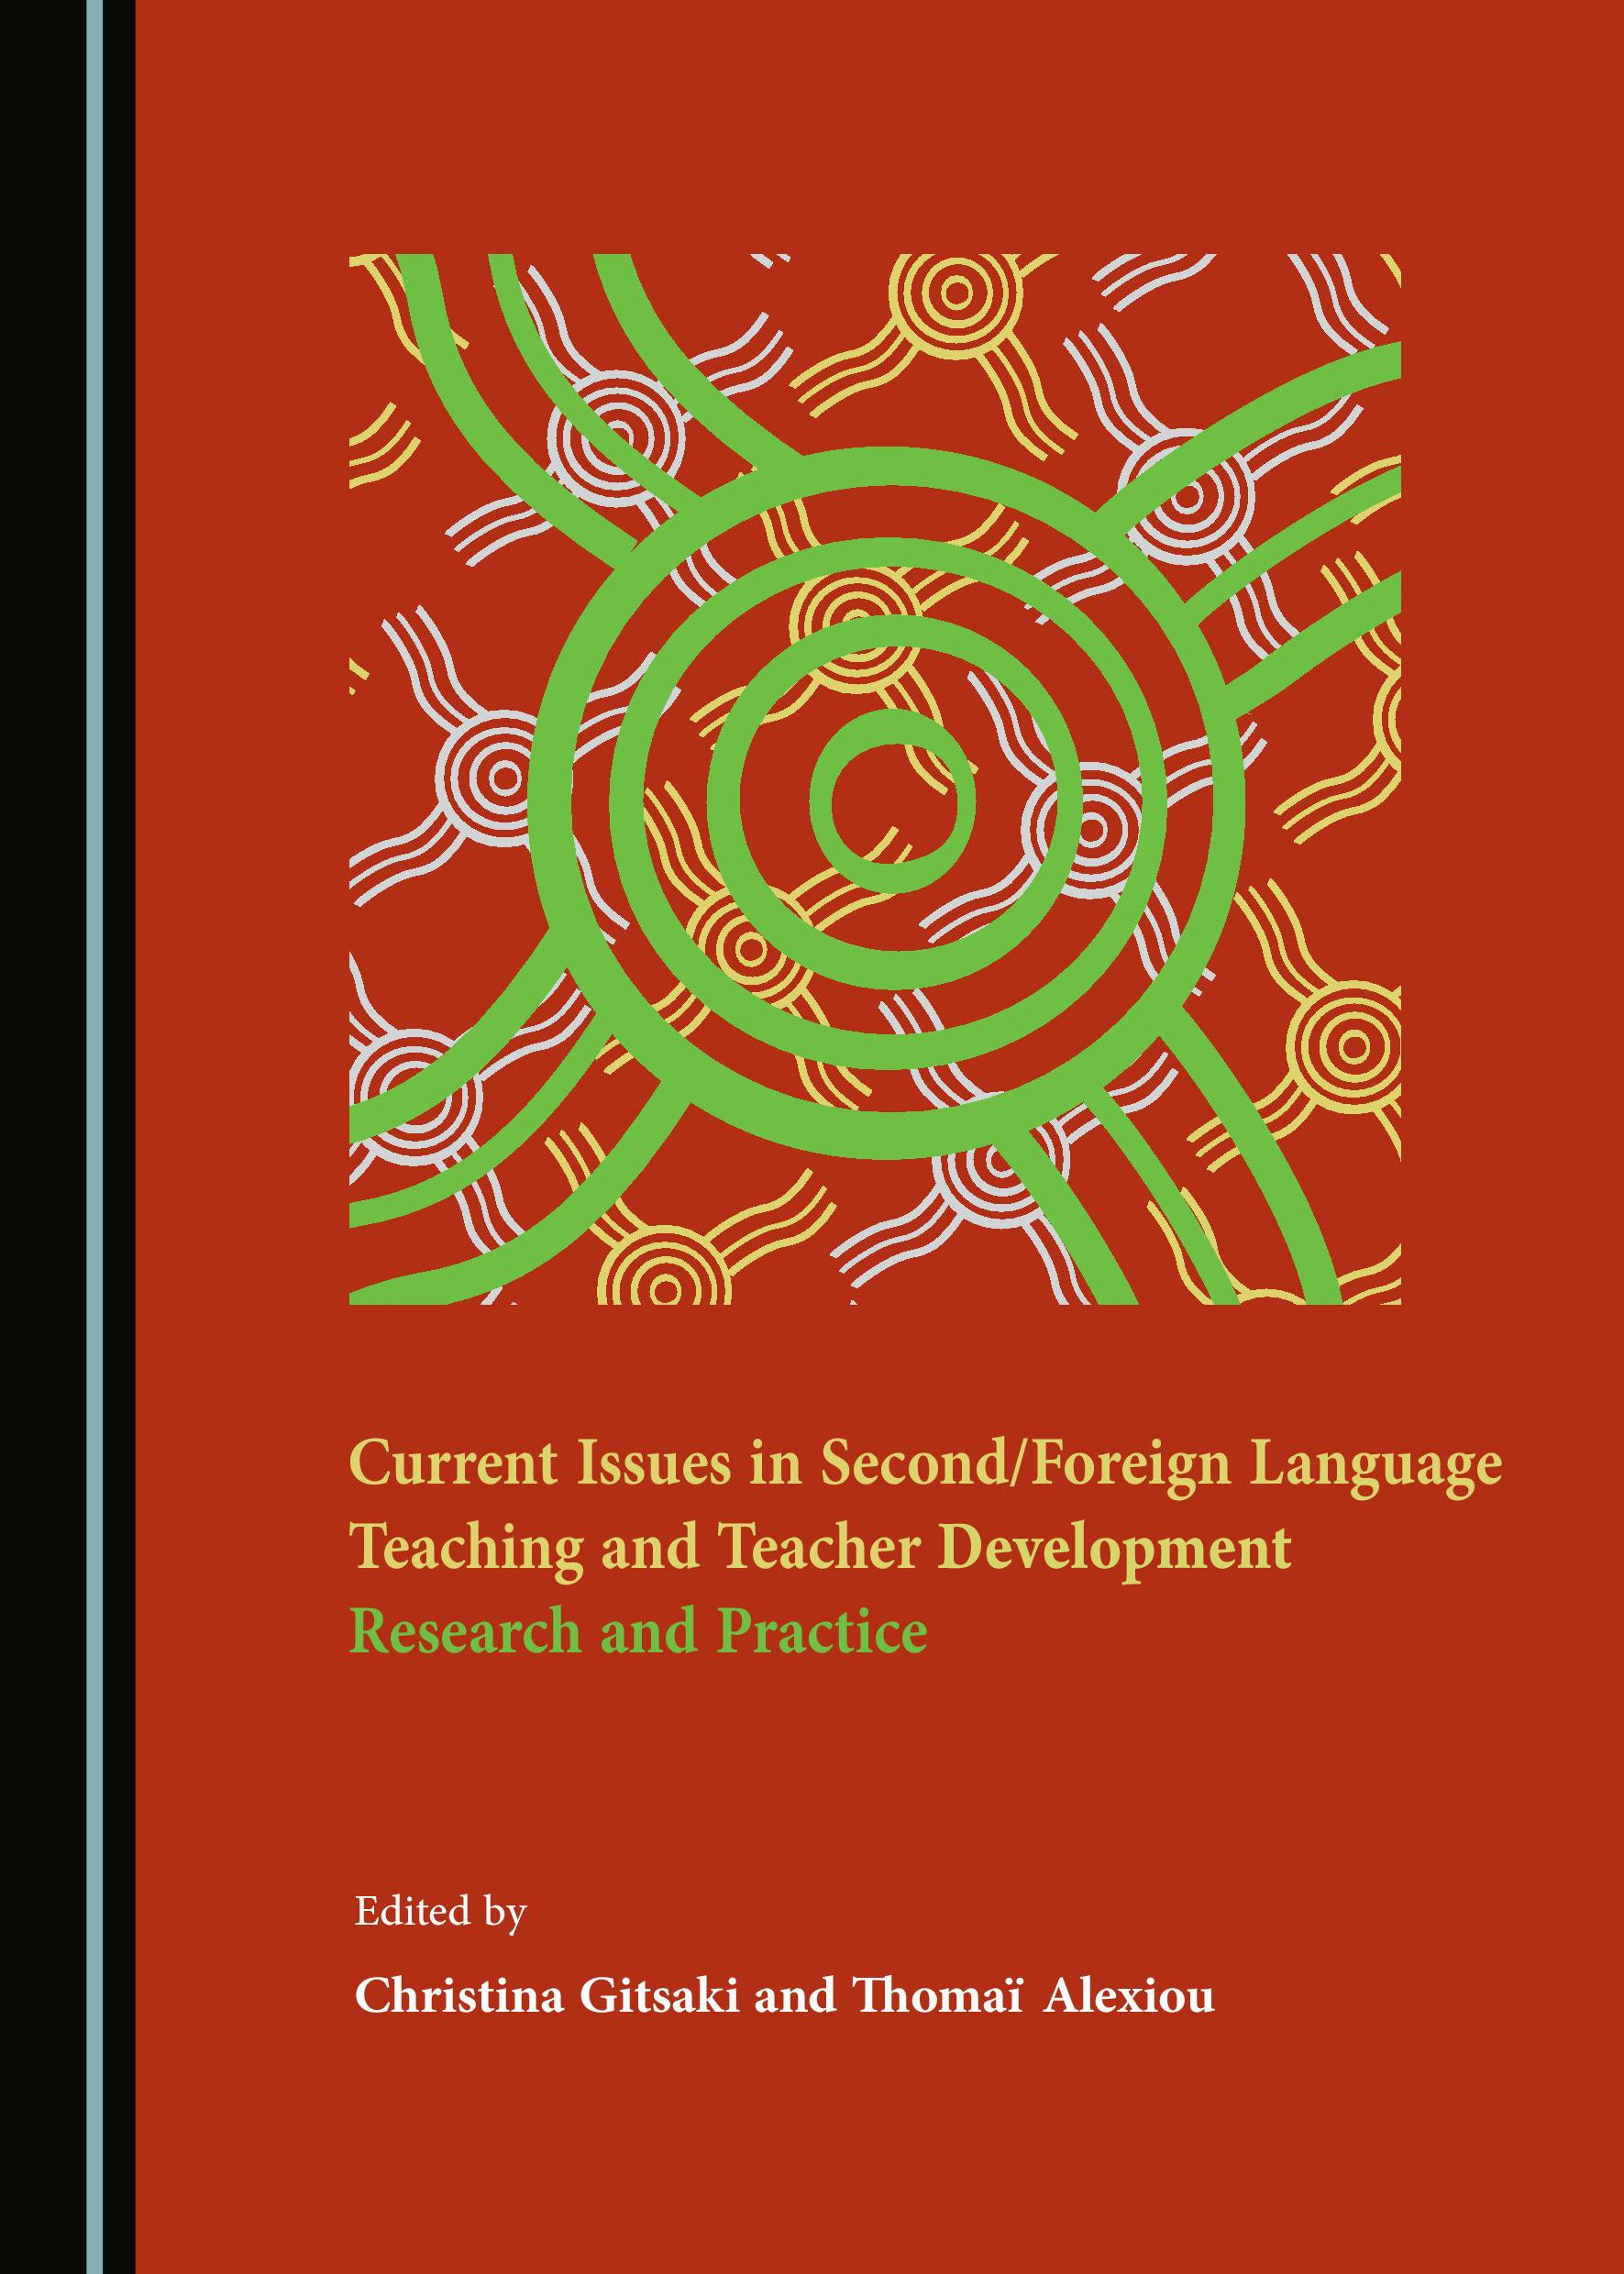 Current Issues in Second/Foreign Language Teaching and Teacher Development: Research and Practice